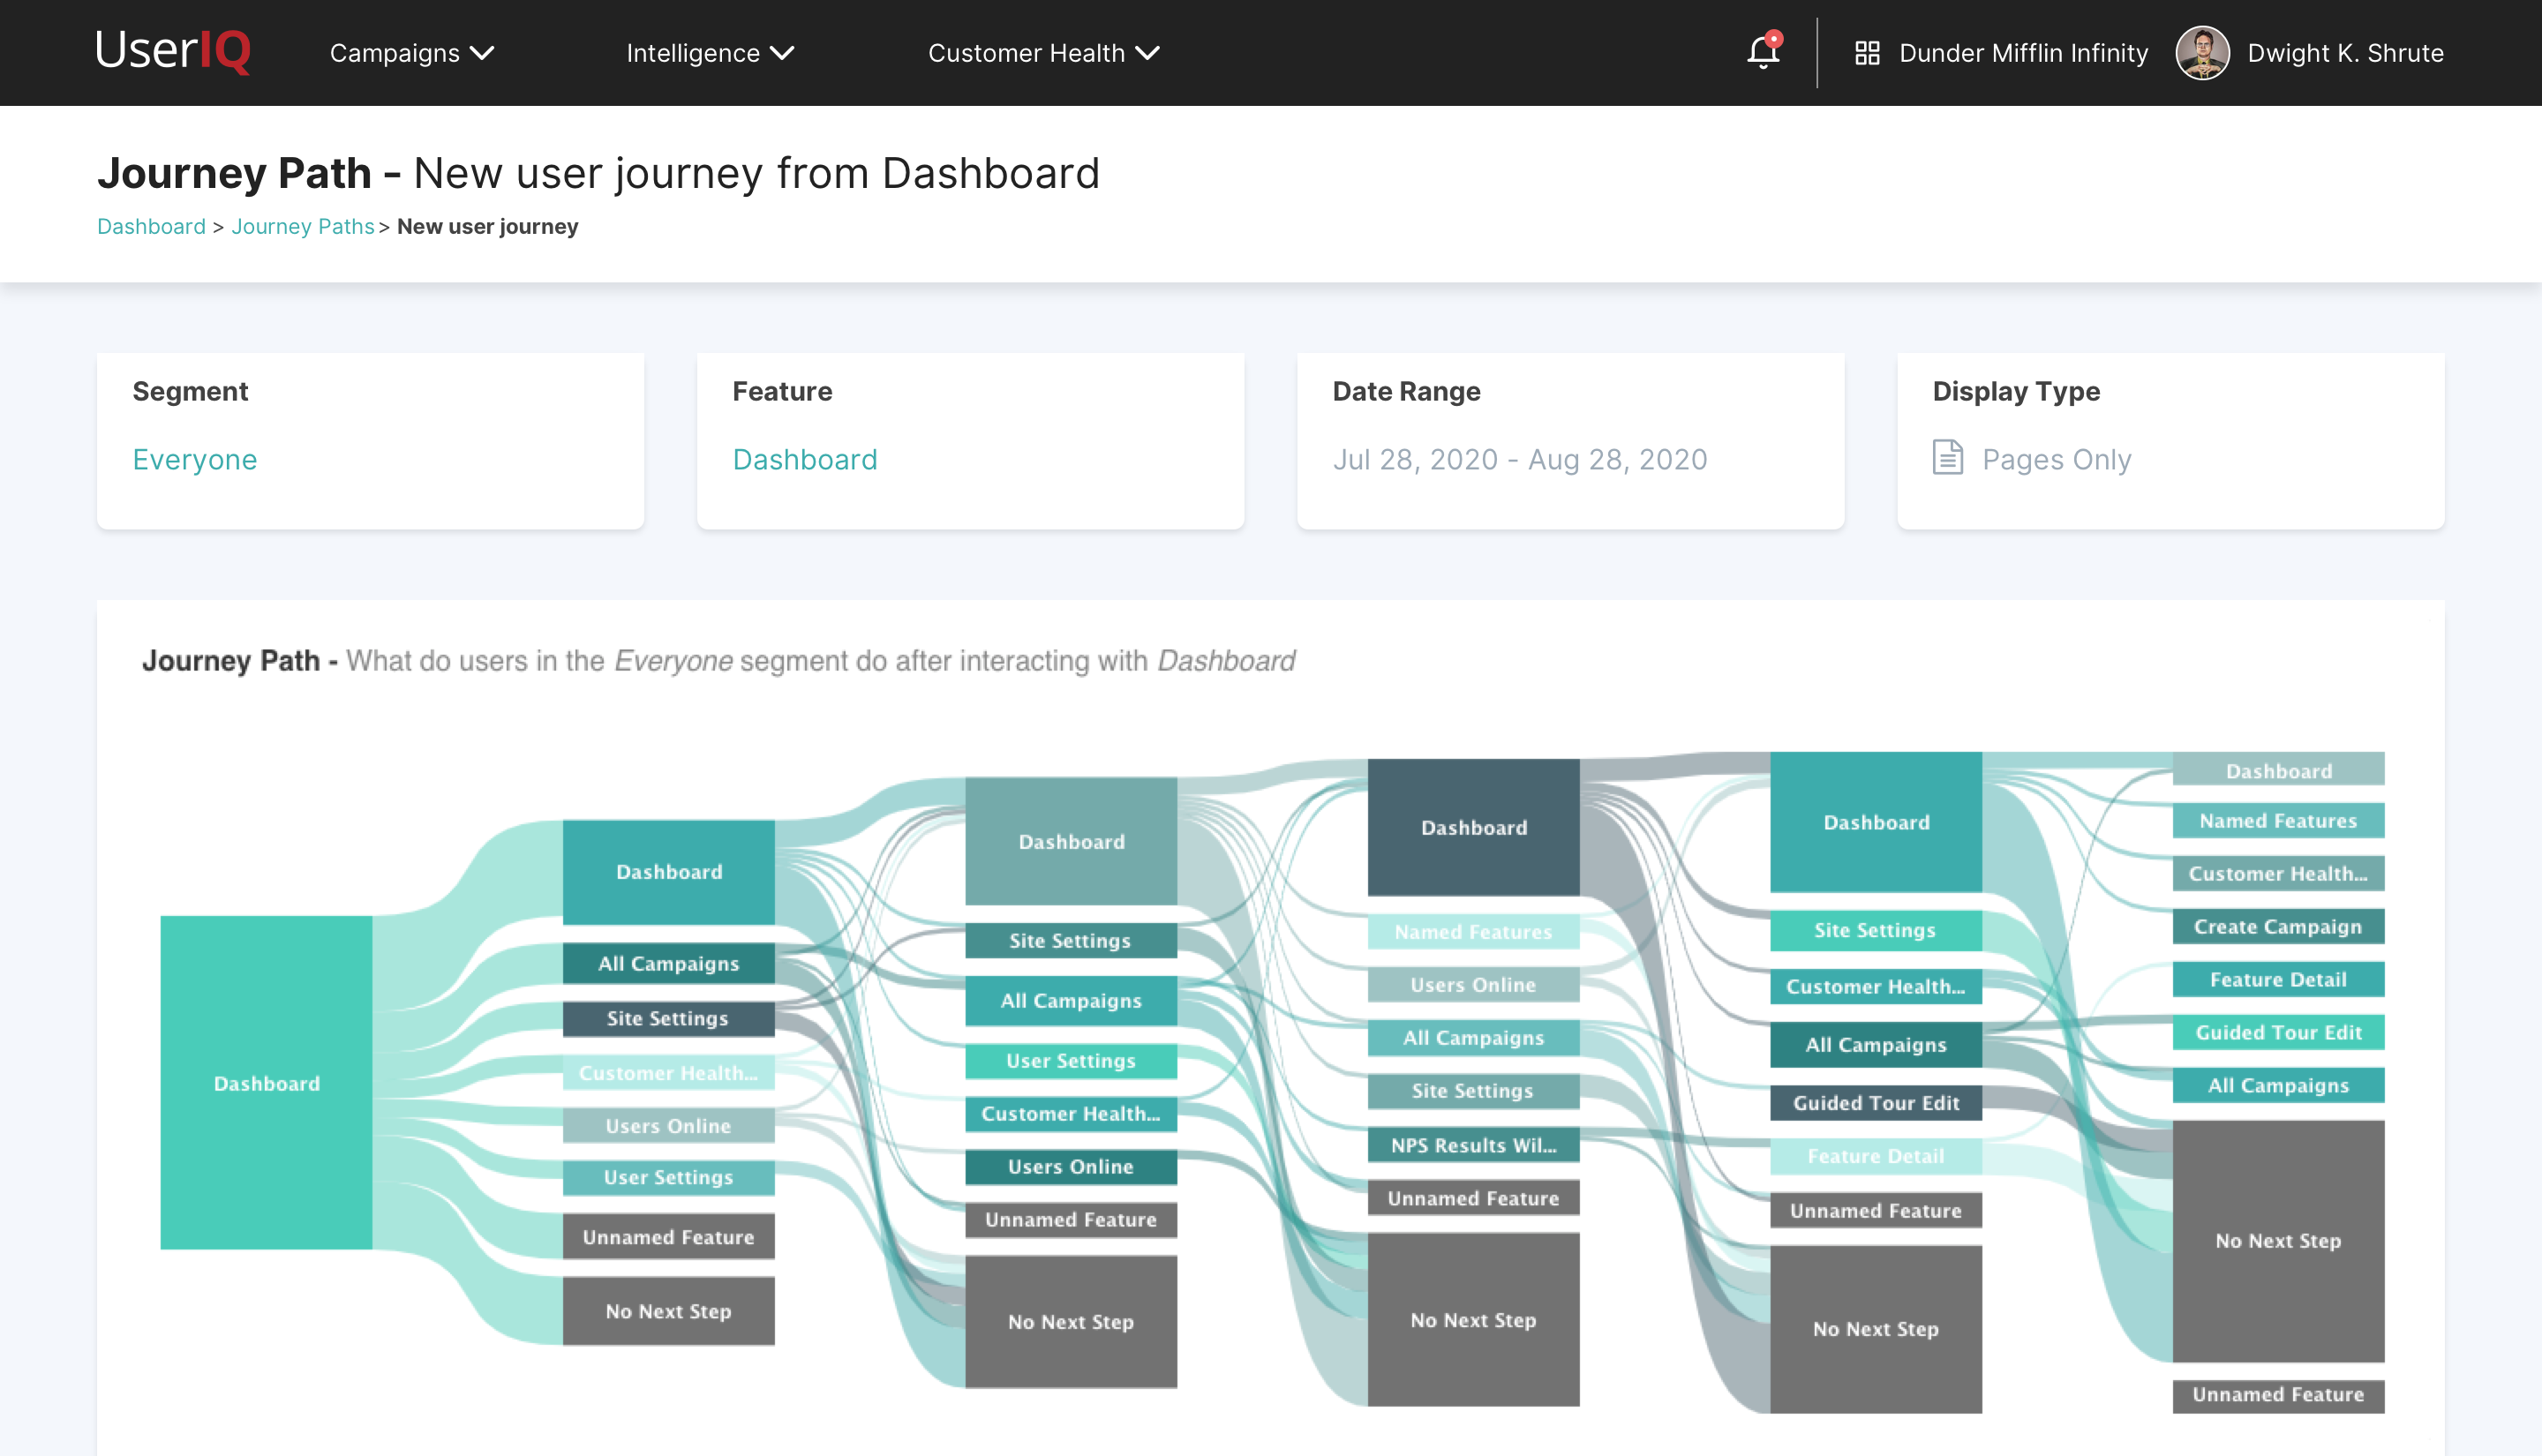 Use journey paths to explore behavioral trends, visualize the path customers take through your application, and uncover key issues that may not be apparent from usage analytics or feedback surveys alone.